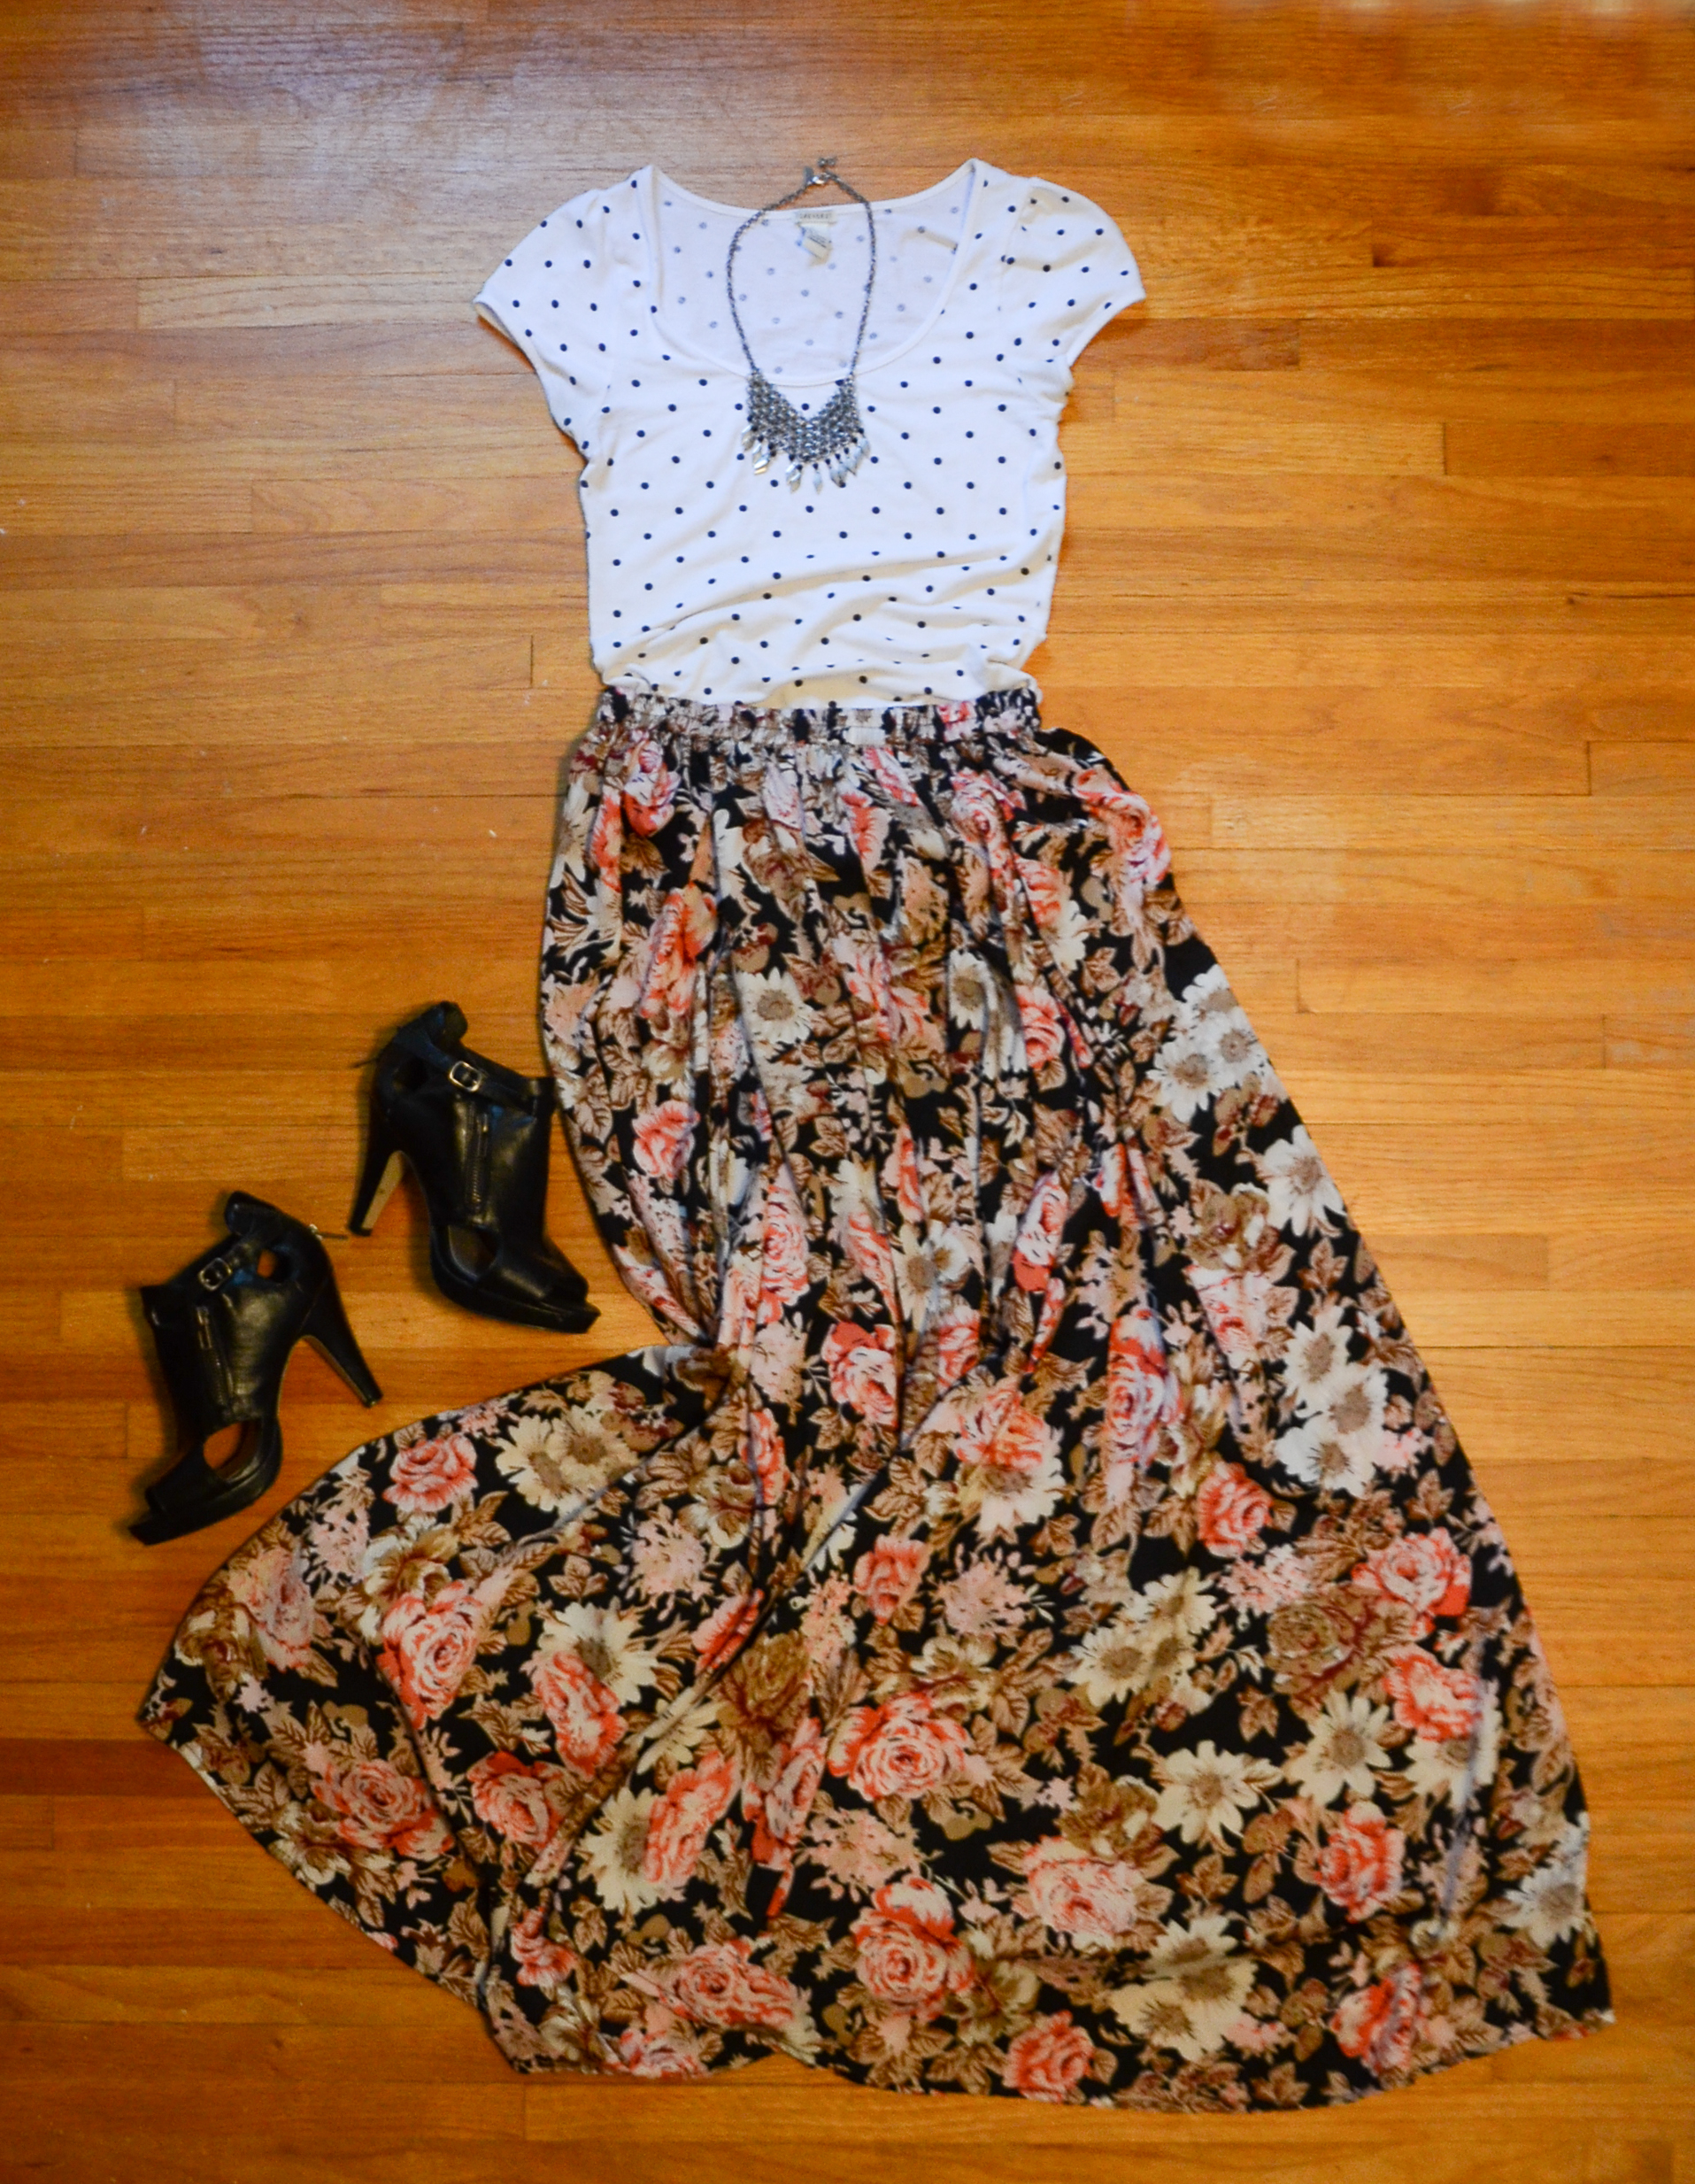 Polka dots and floral together are a little girly for me, but I just love how the focus is on the skirt, so you can essentially do whatever you want on top!